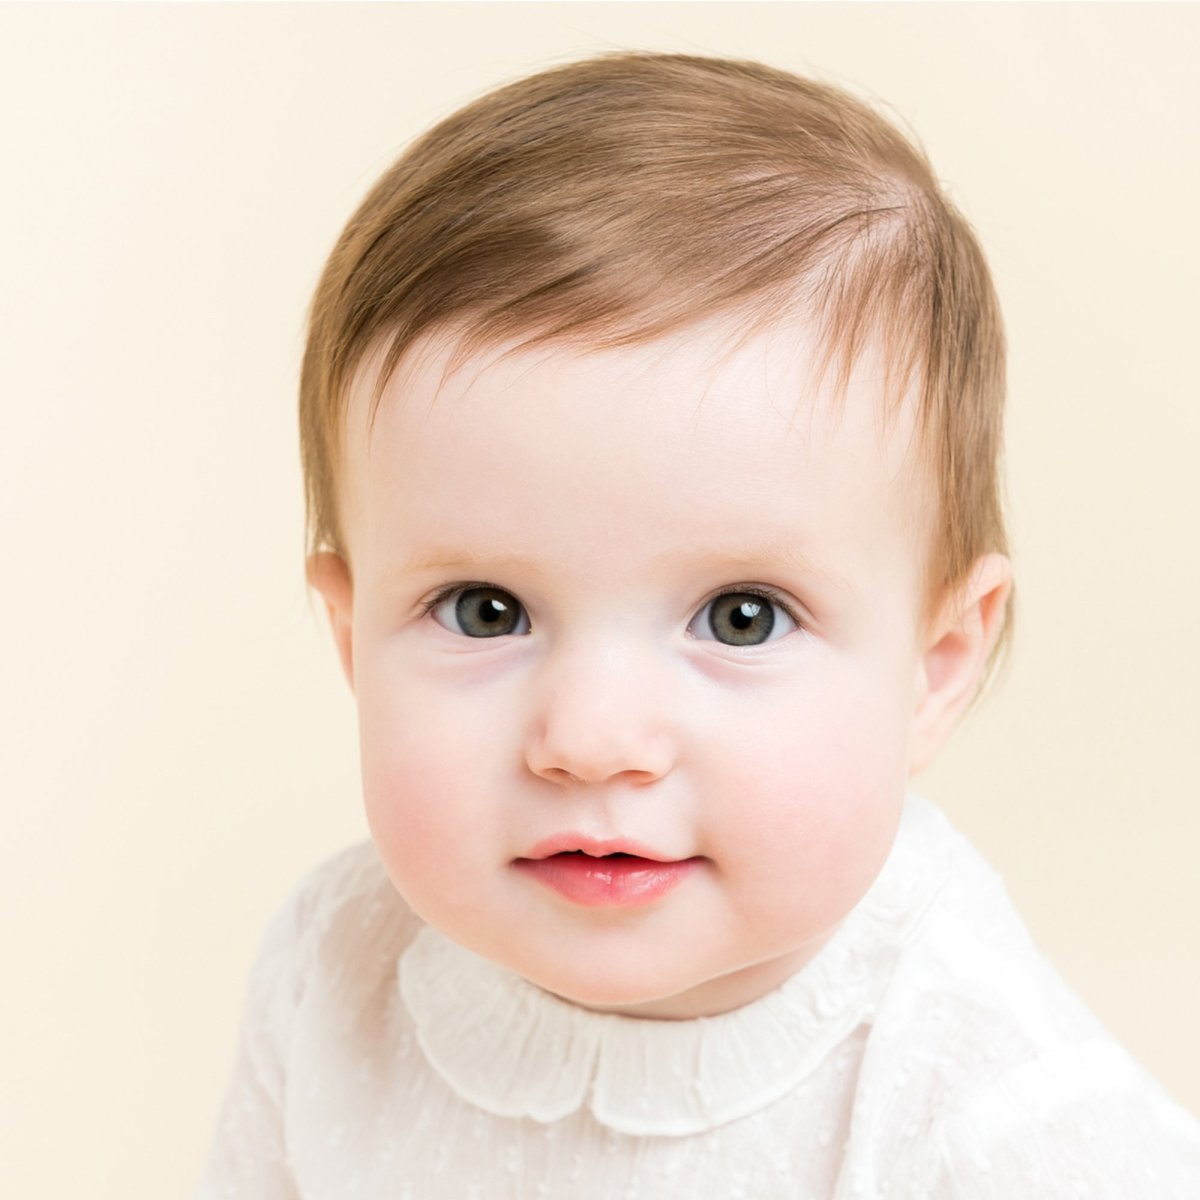 baby portrait by clare murthy london